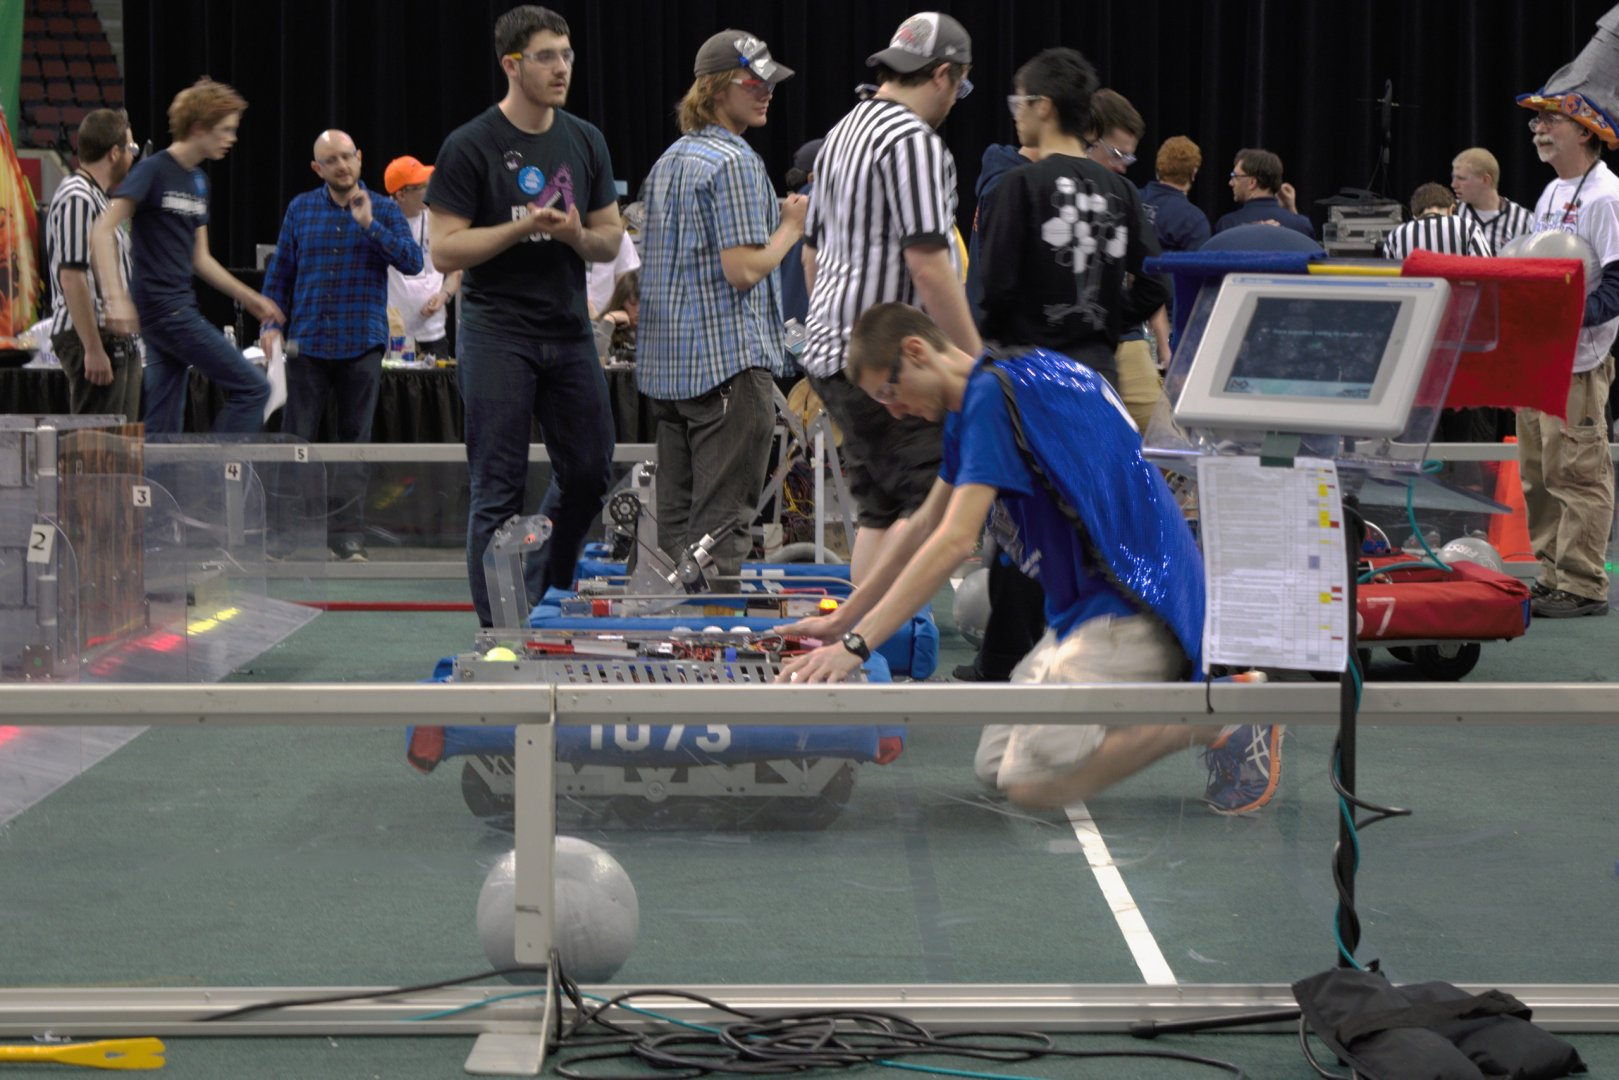 087.Boston FIRST Robotics Competition 04-03-2016.jpg